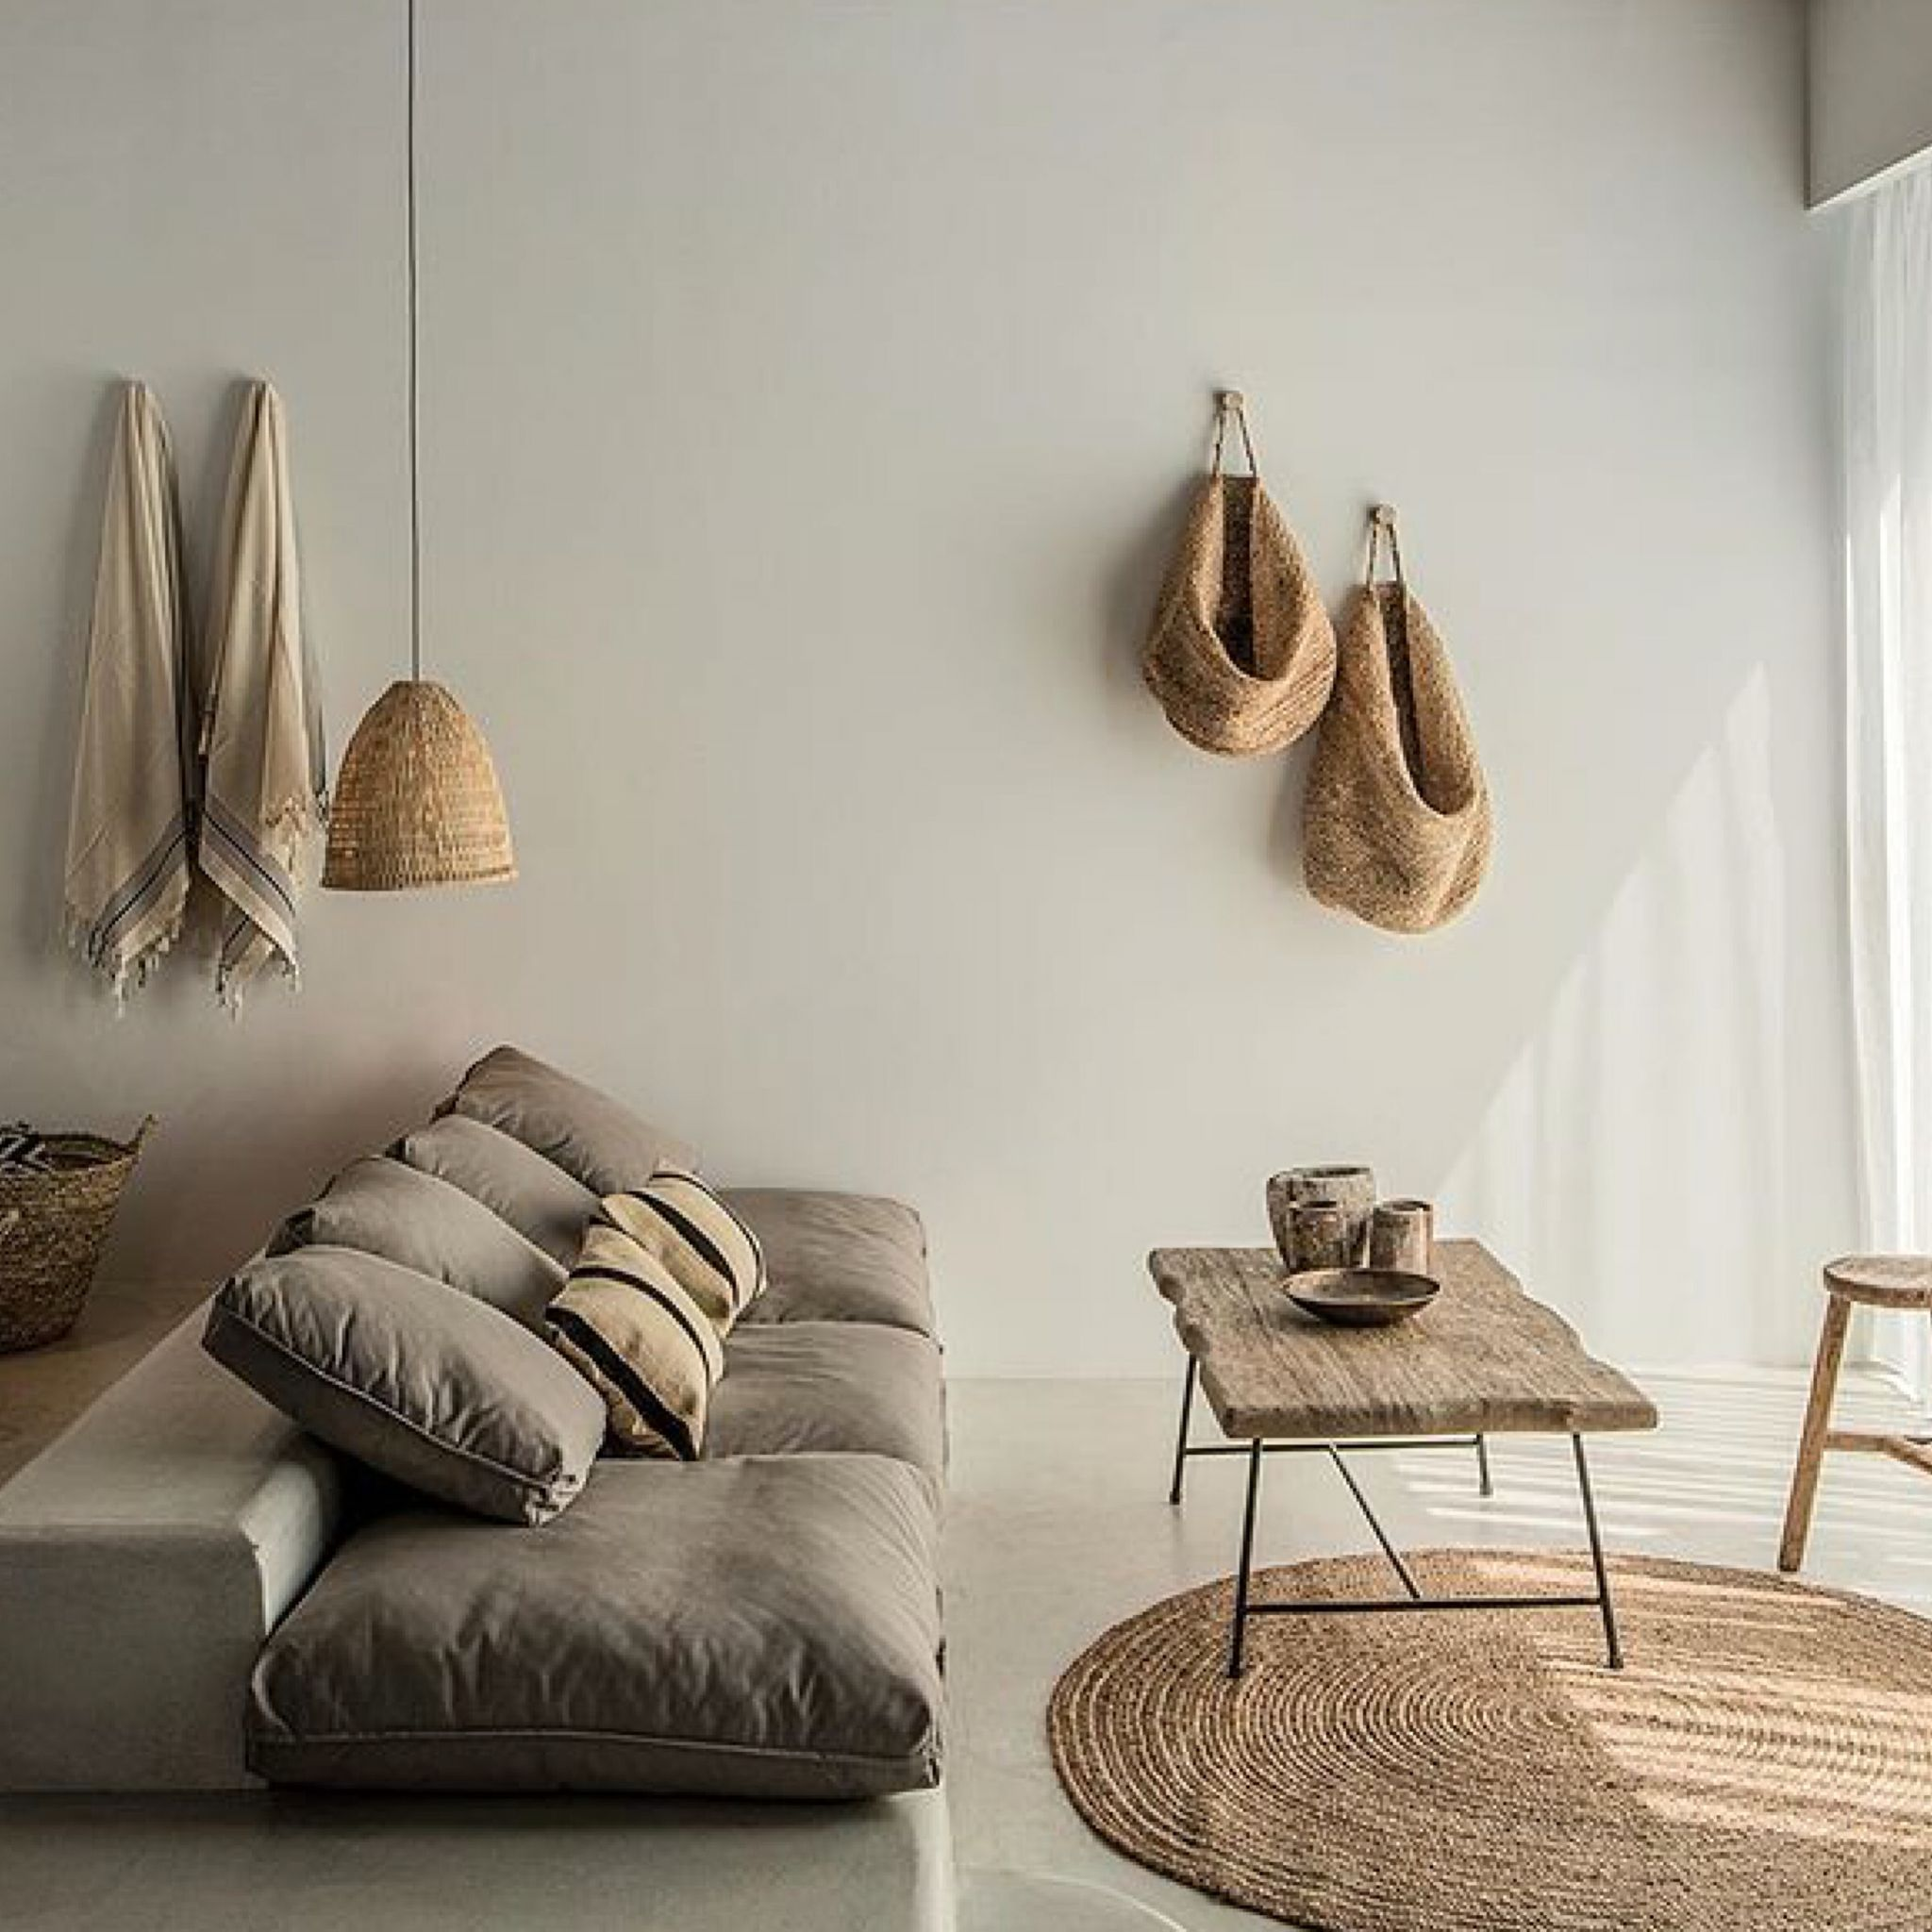 Minimal linen wood organic interior decor and design home for Minimalist items for home